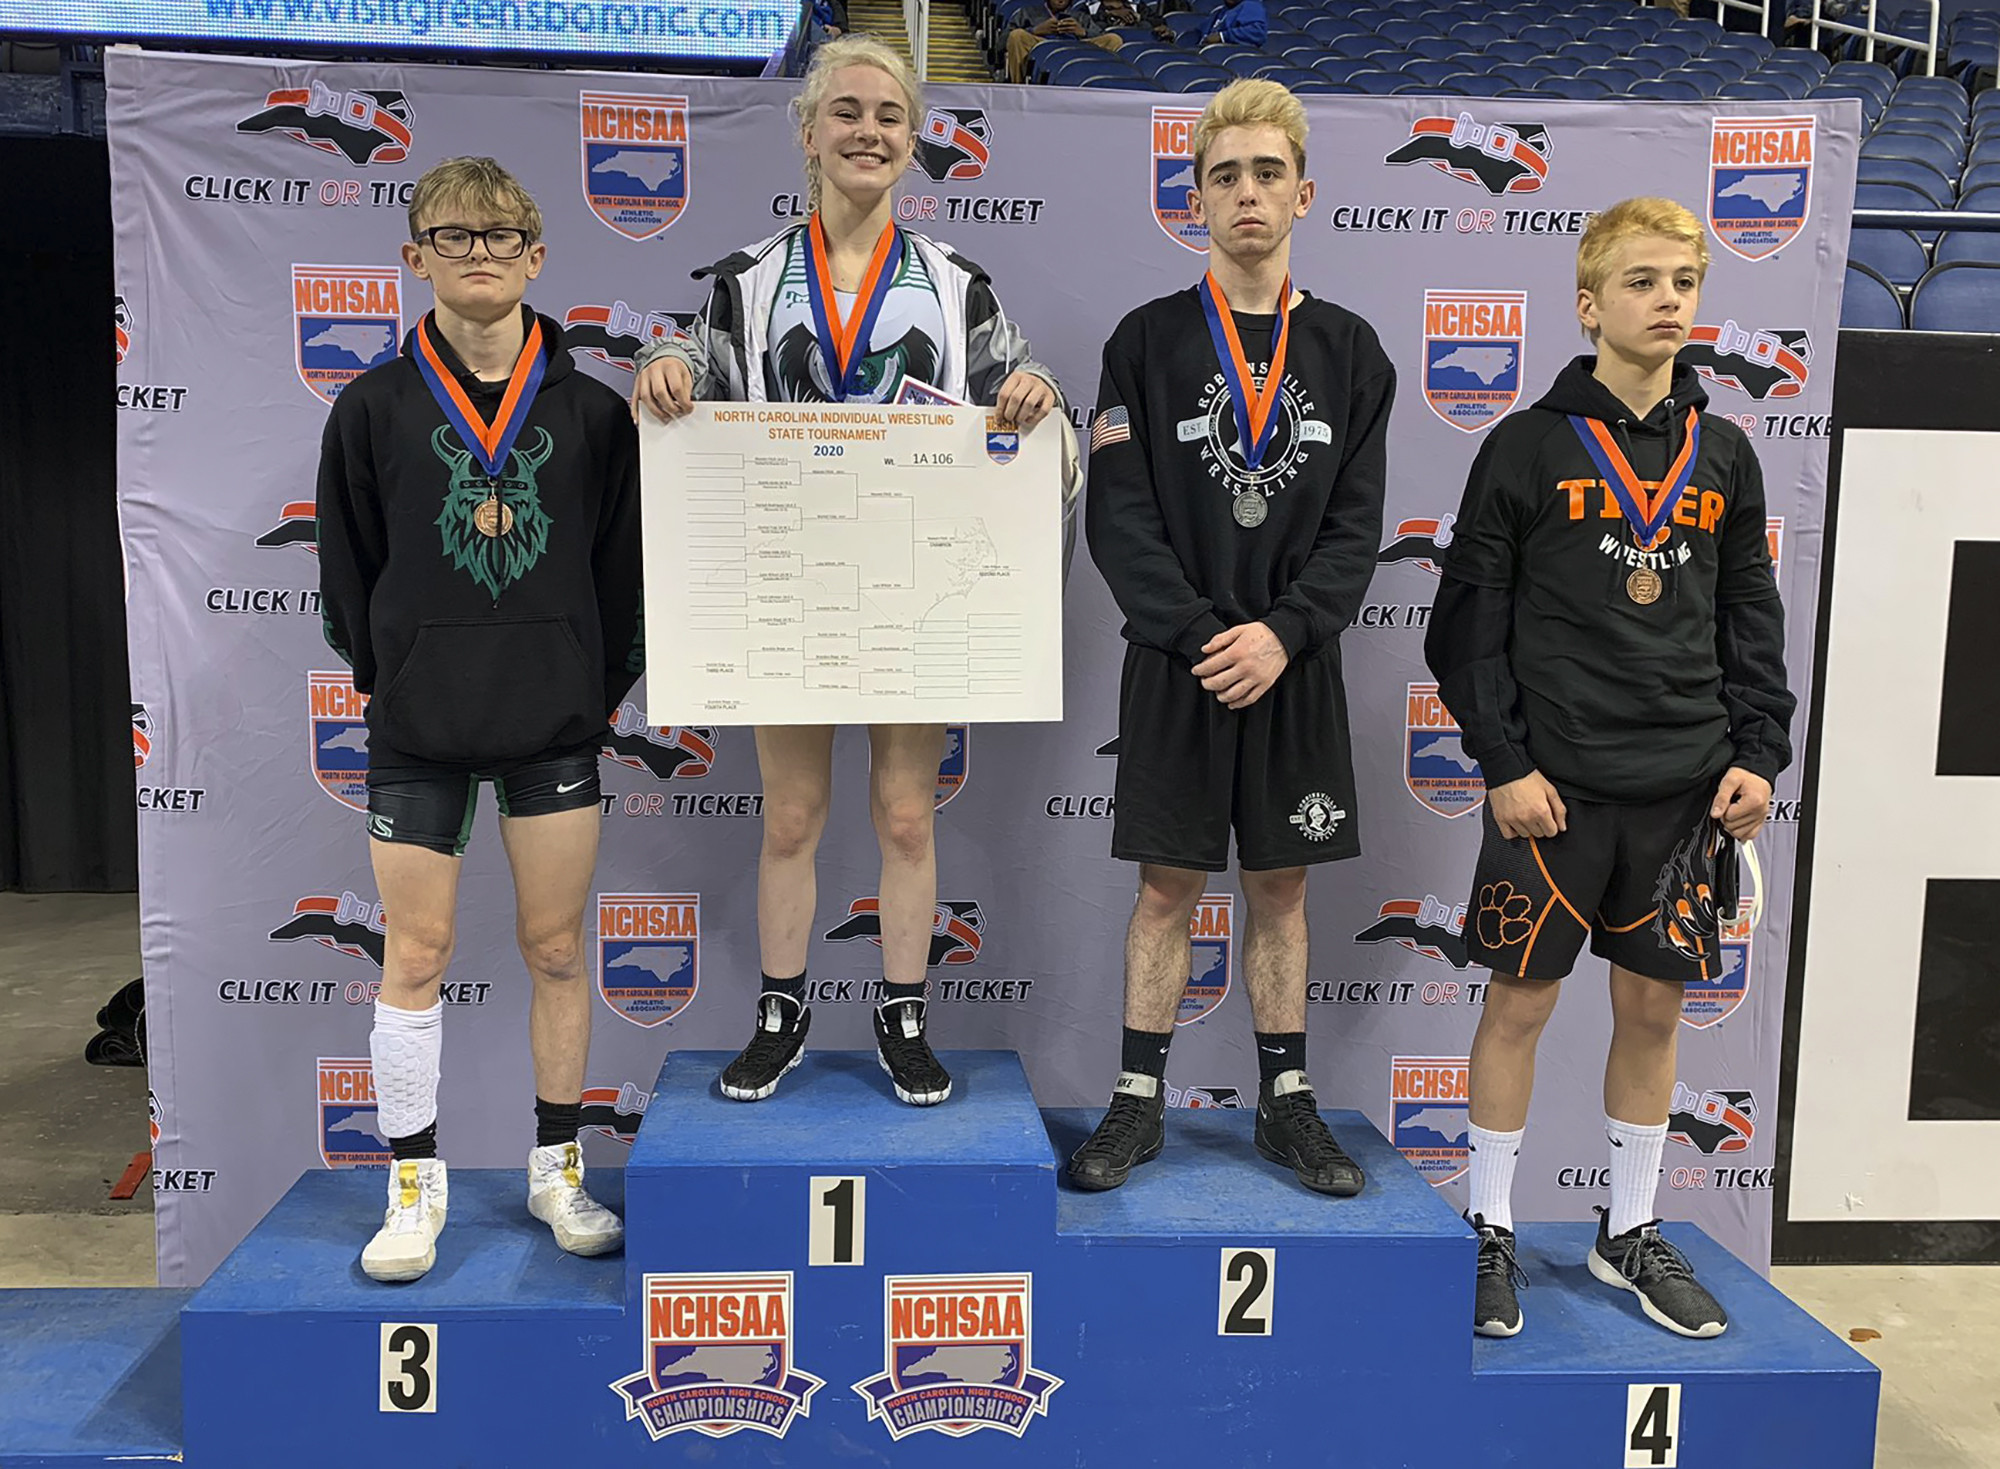 Female wrestler wins North Carolina high school state championship for first time